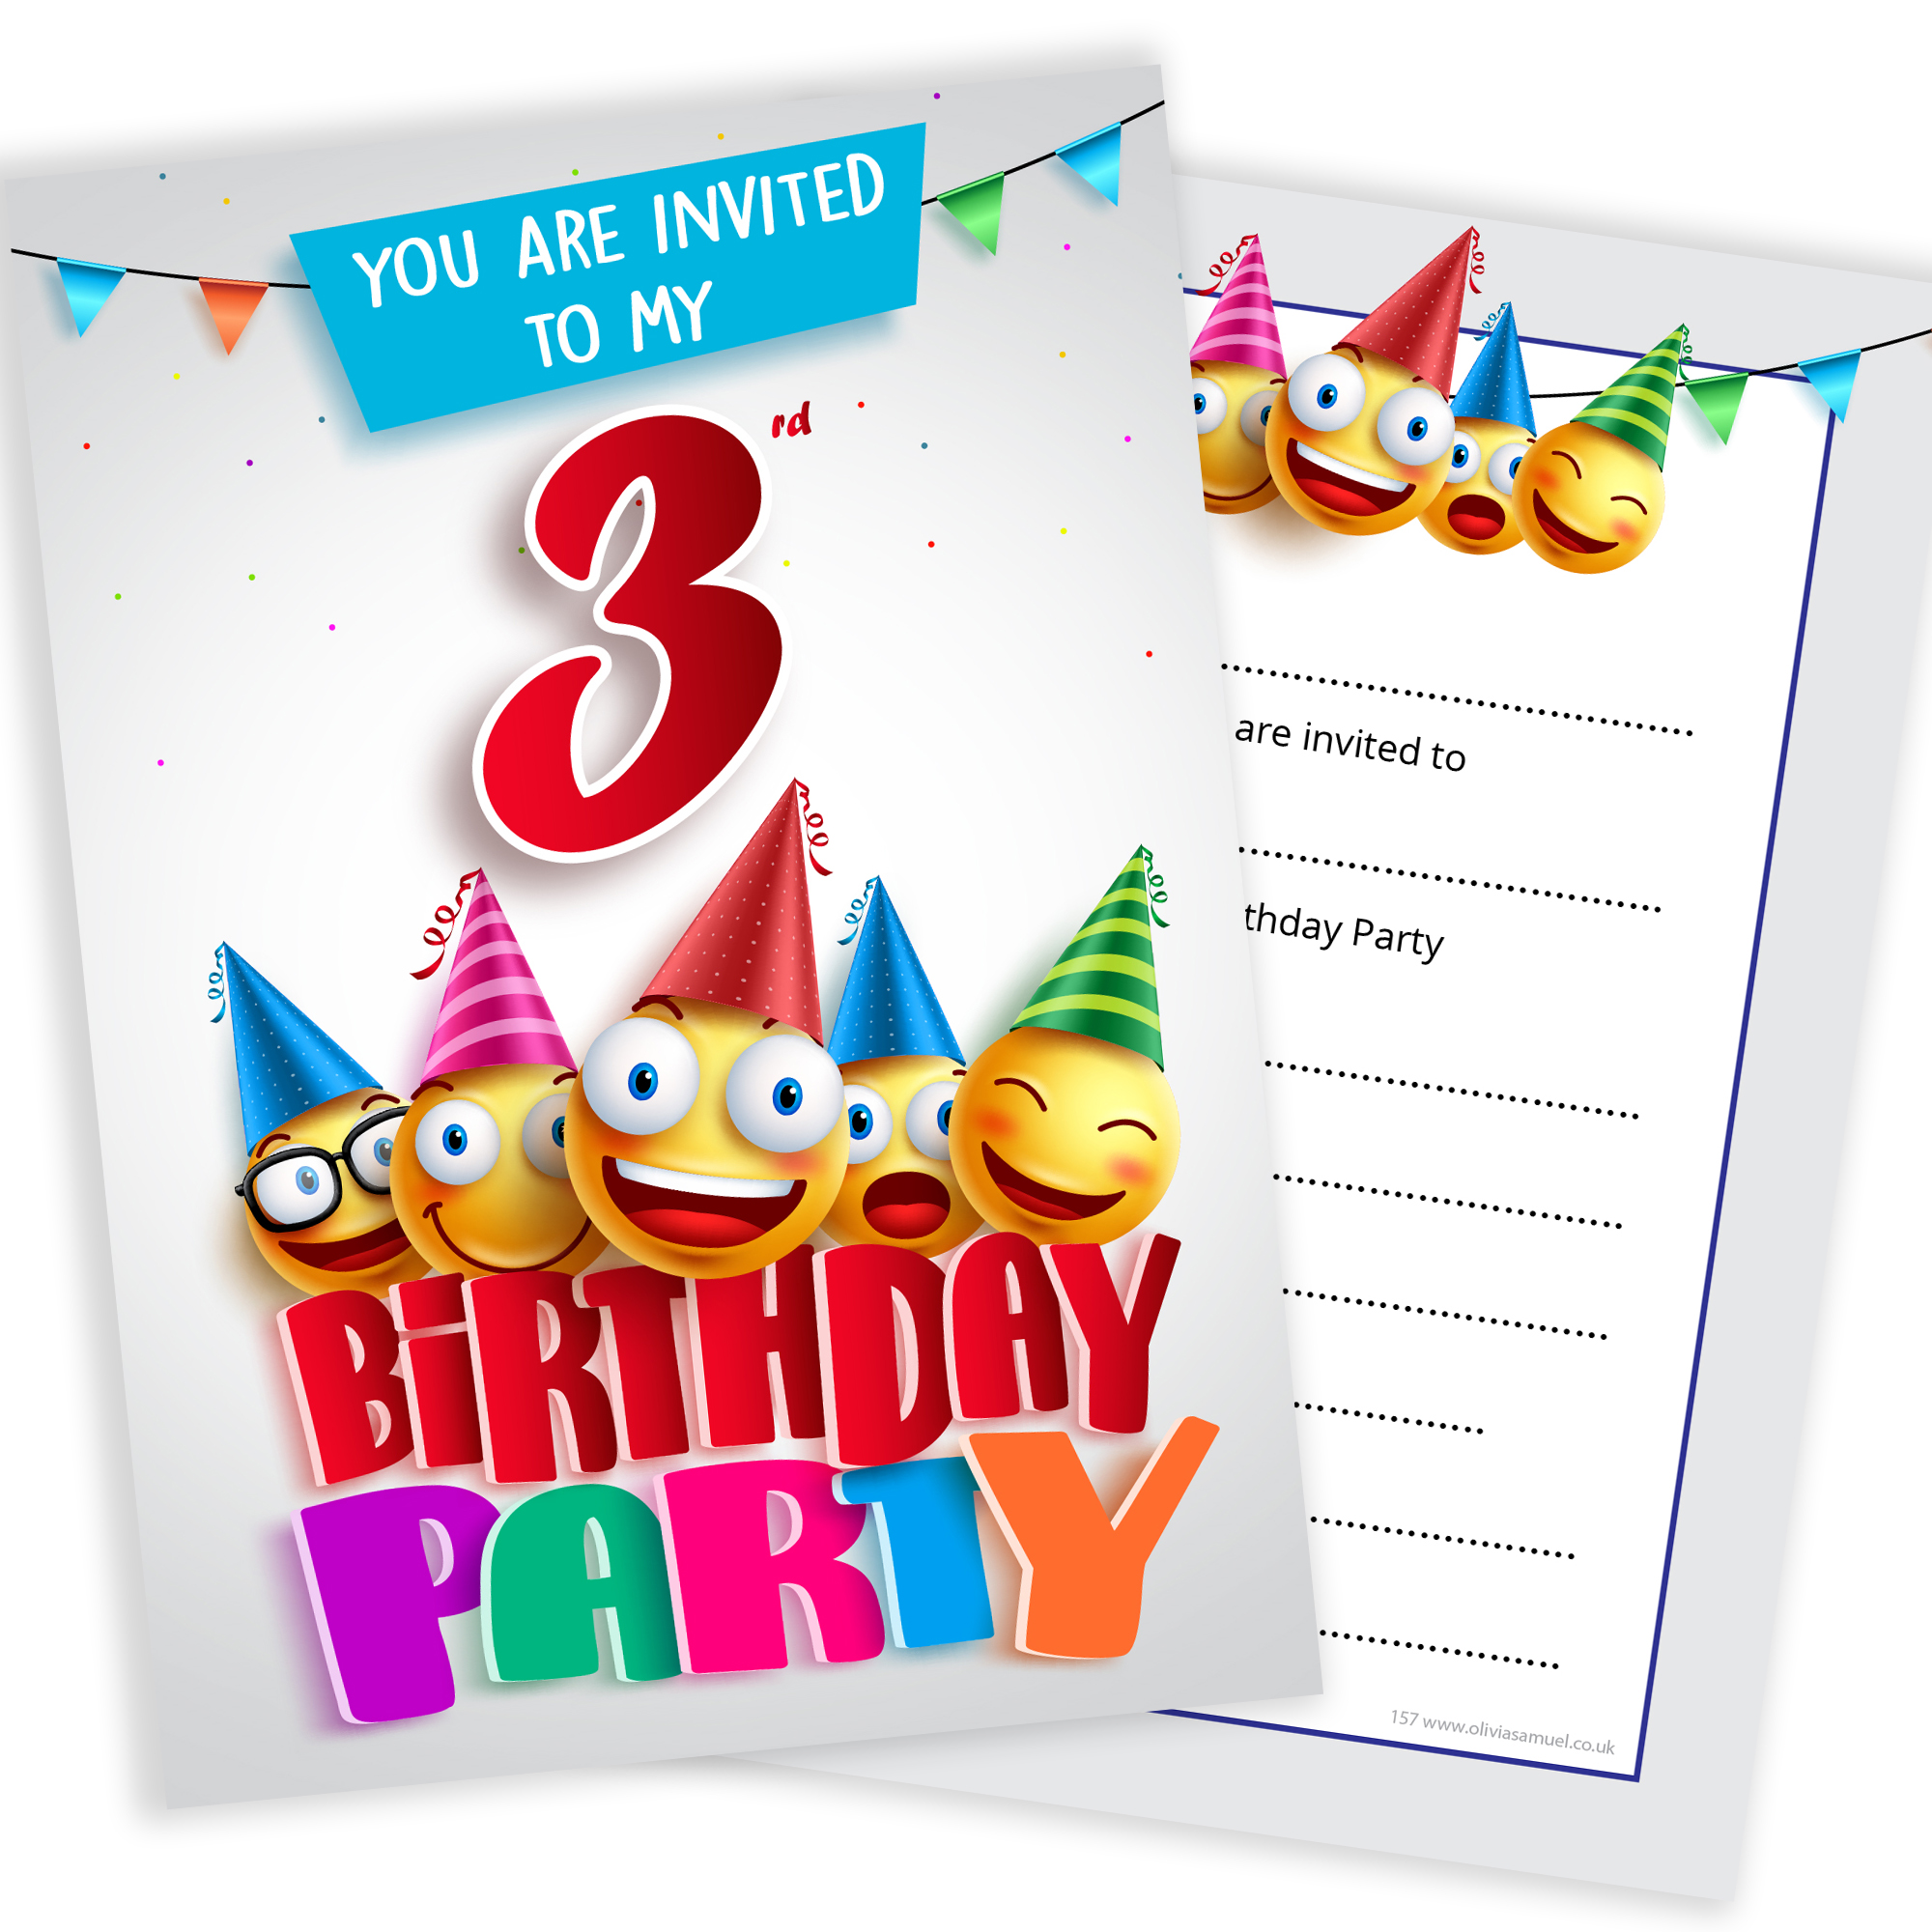 3rd birthday party invites emoji style ready to write with 3rd birthday party emoji party invitations home filmwisefo